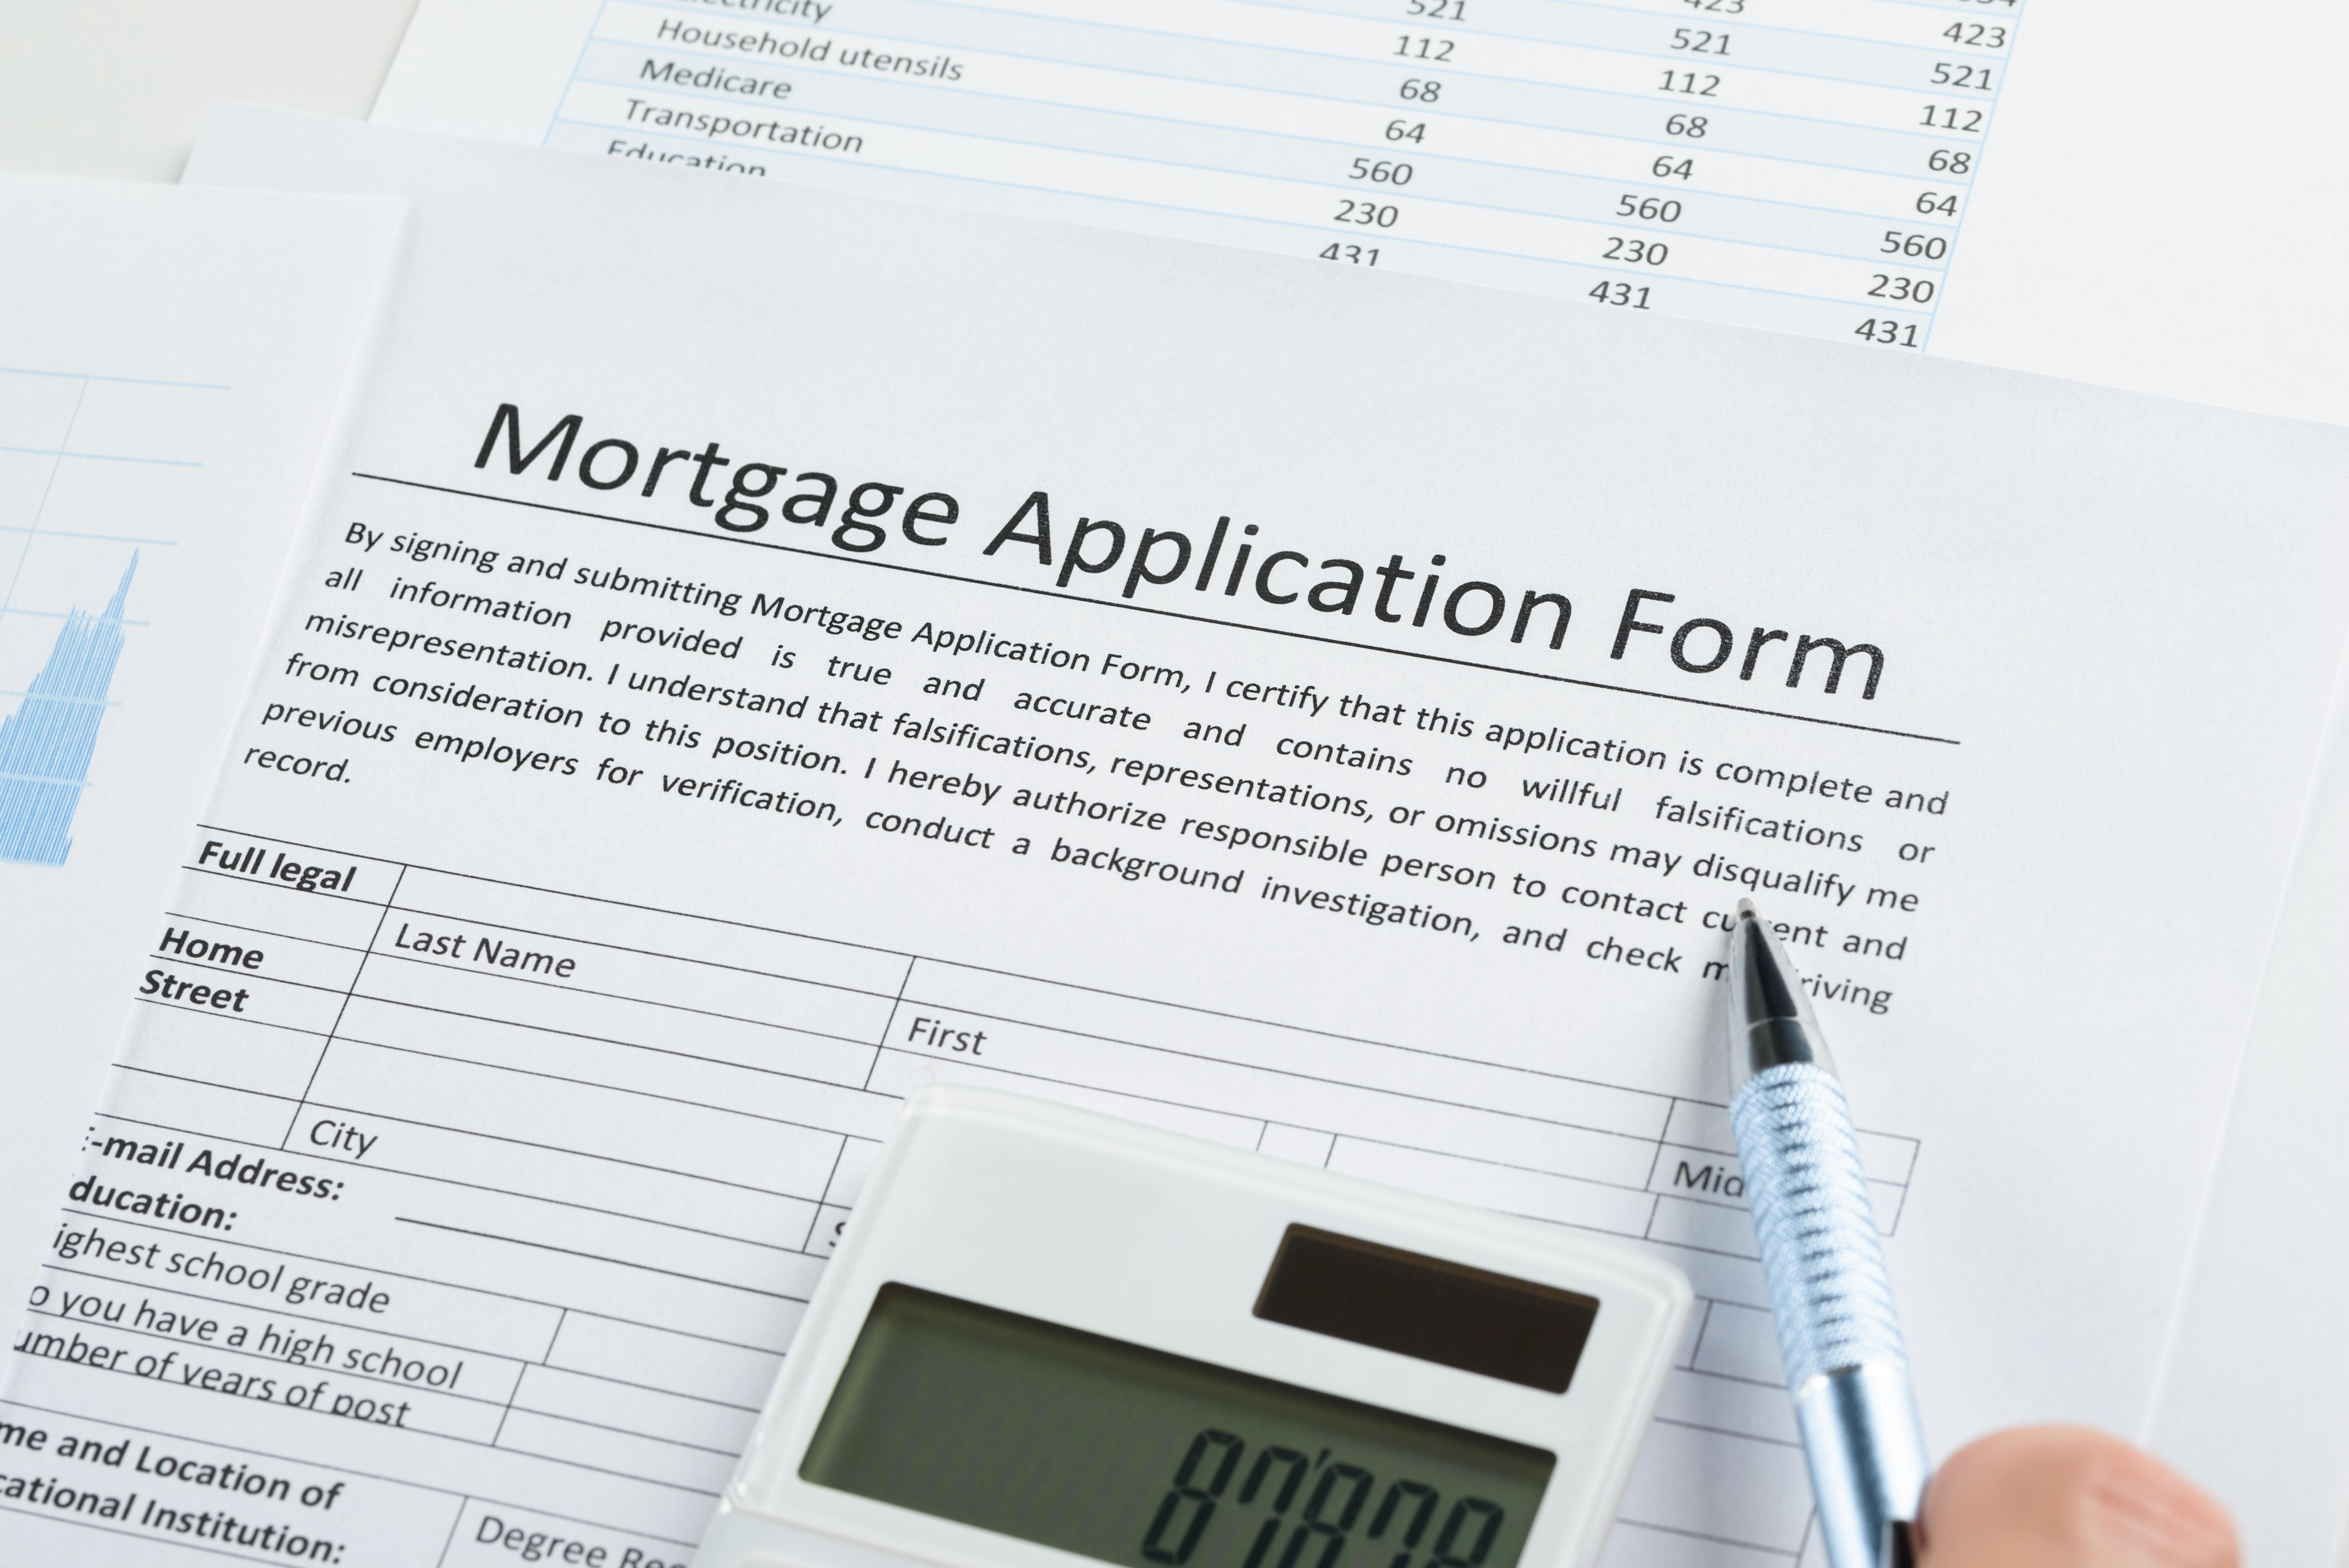 You may need a broker if you want to apply for a bad credit mortgage